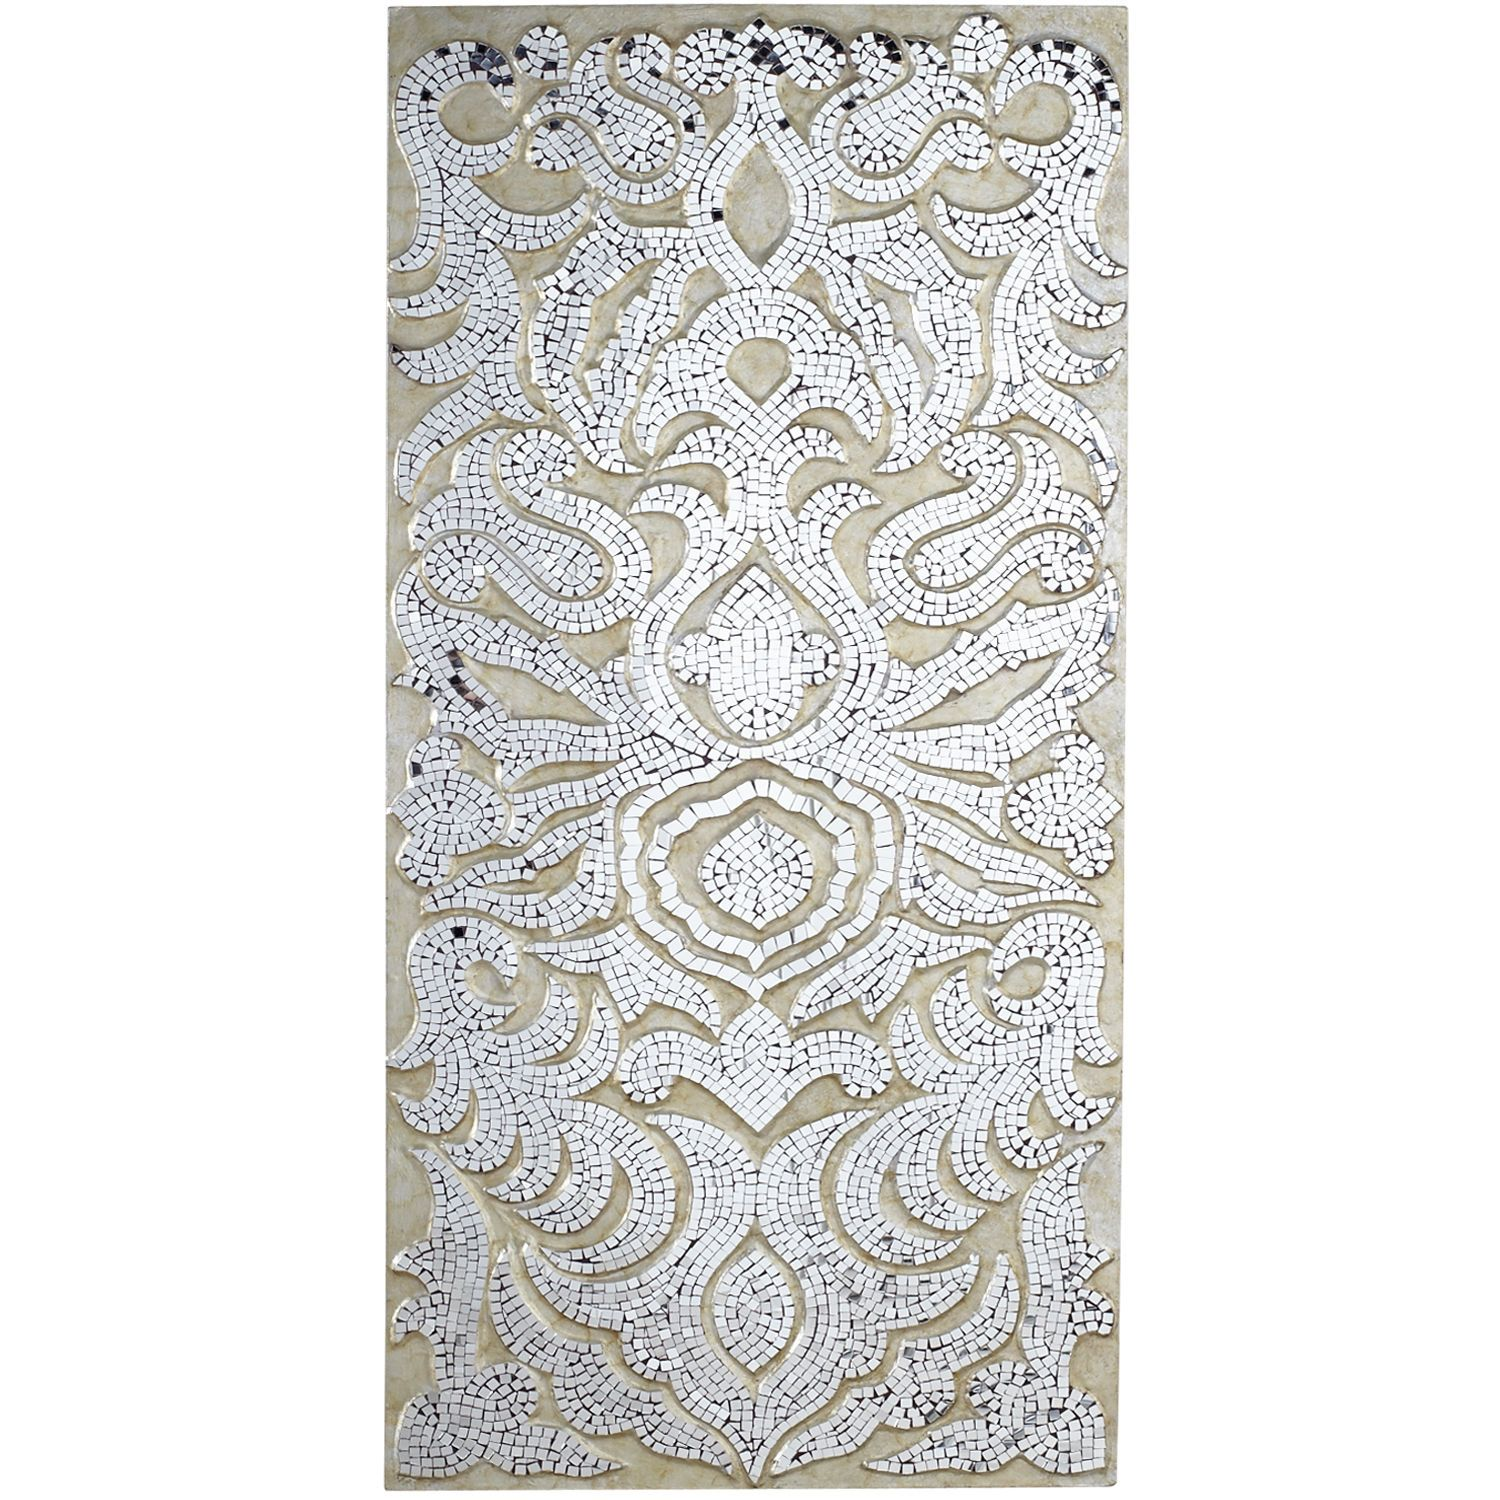 Mirrored Damask Panels - Champagne | Pier 1 Imports ...